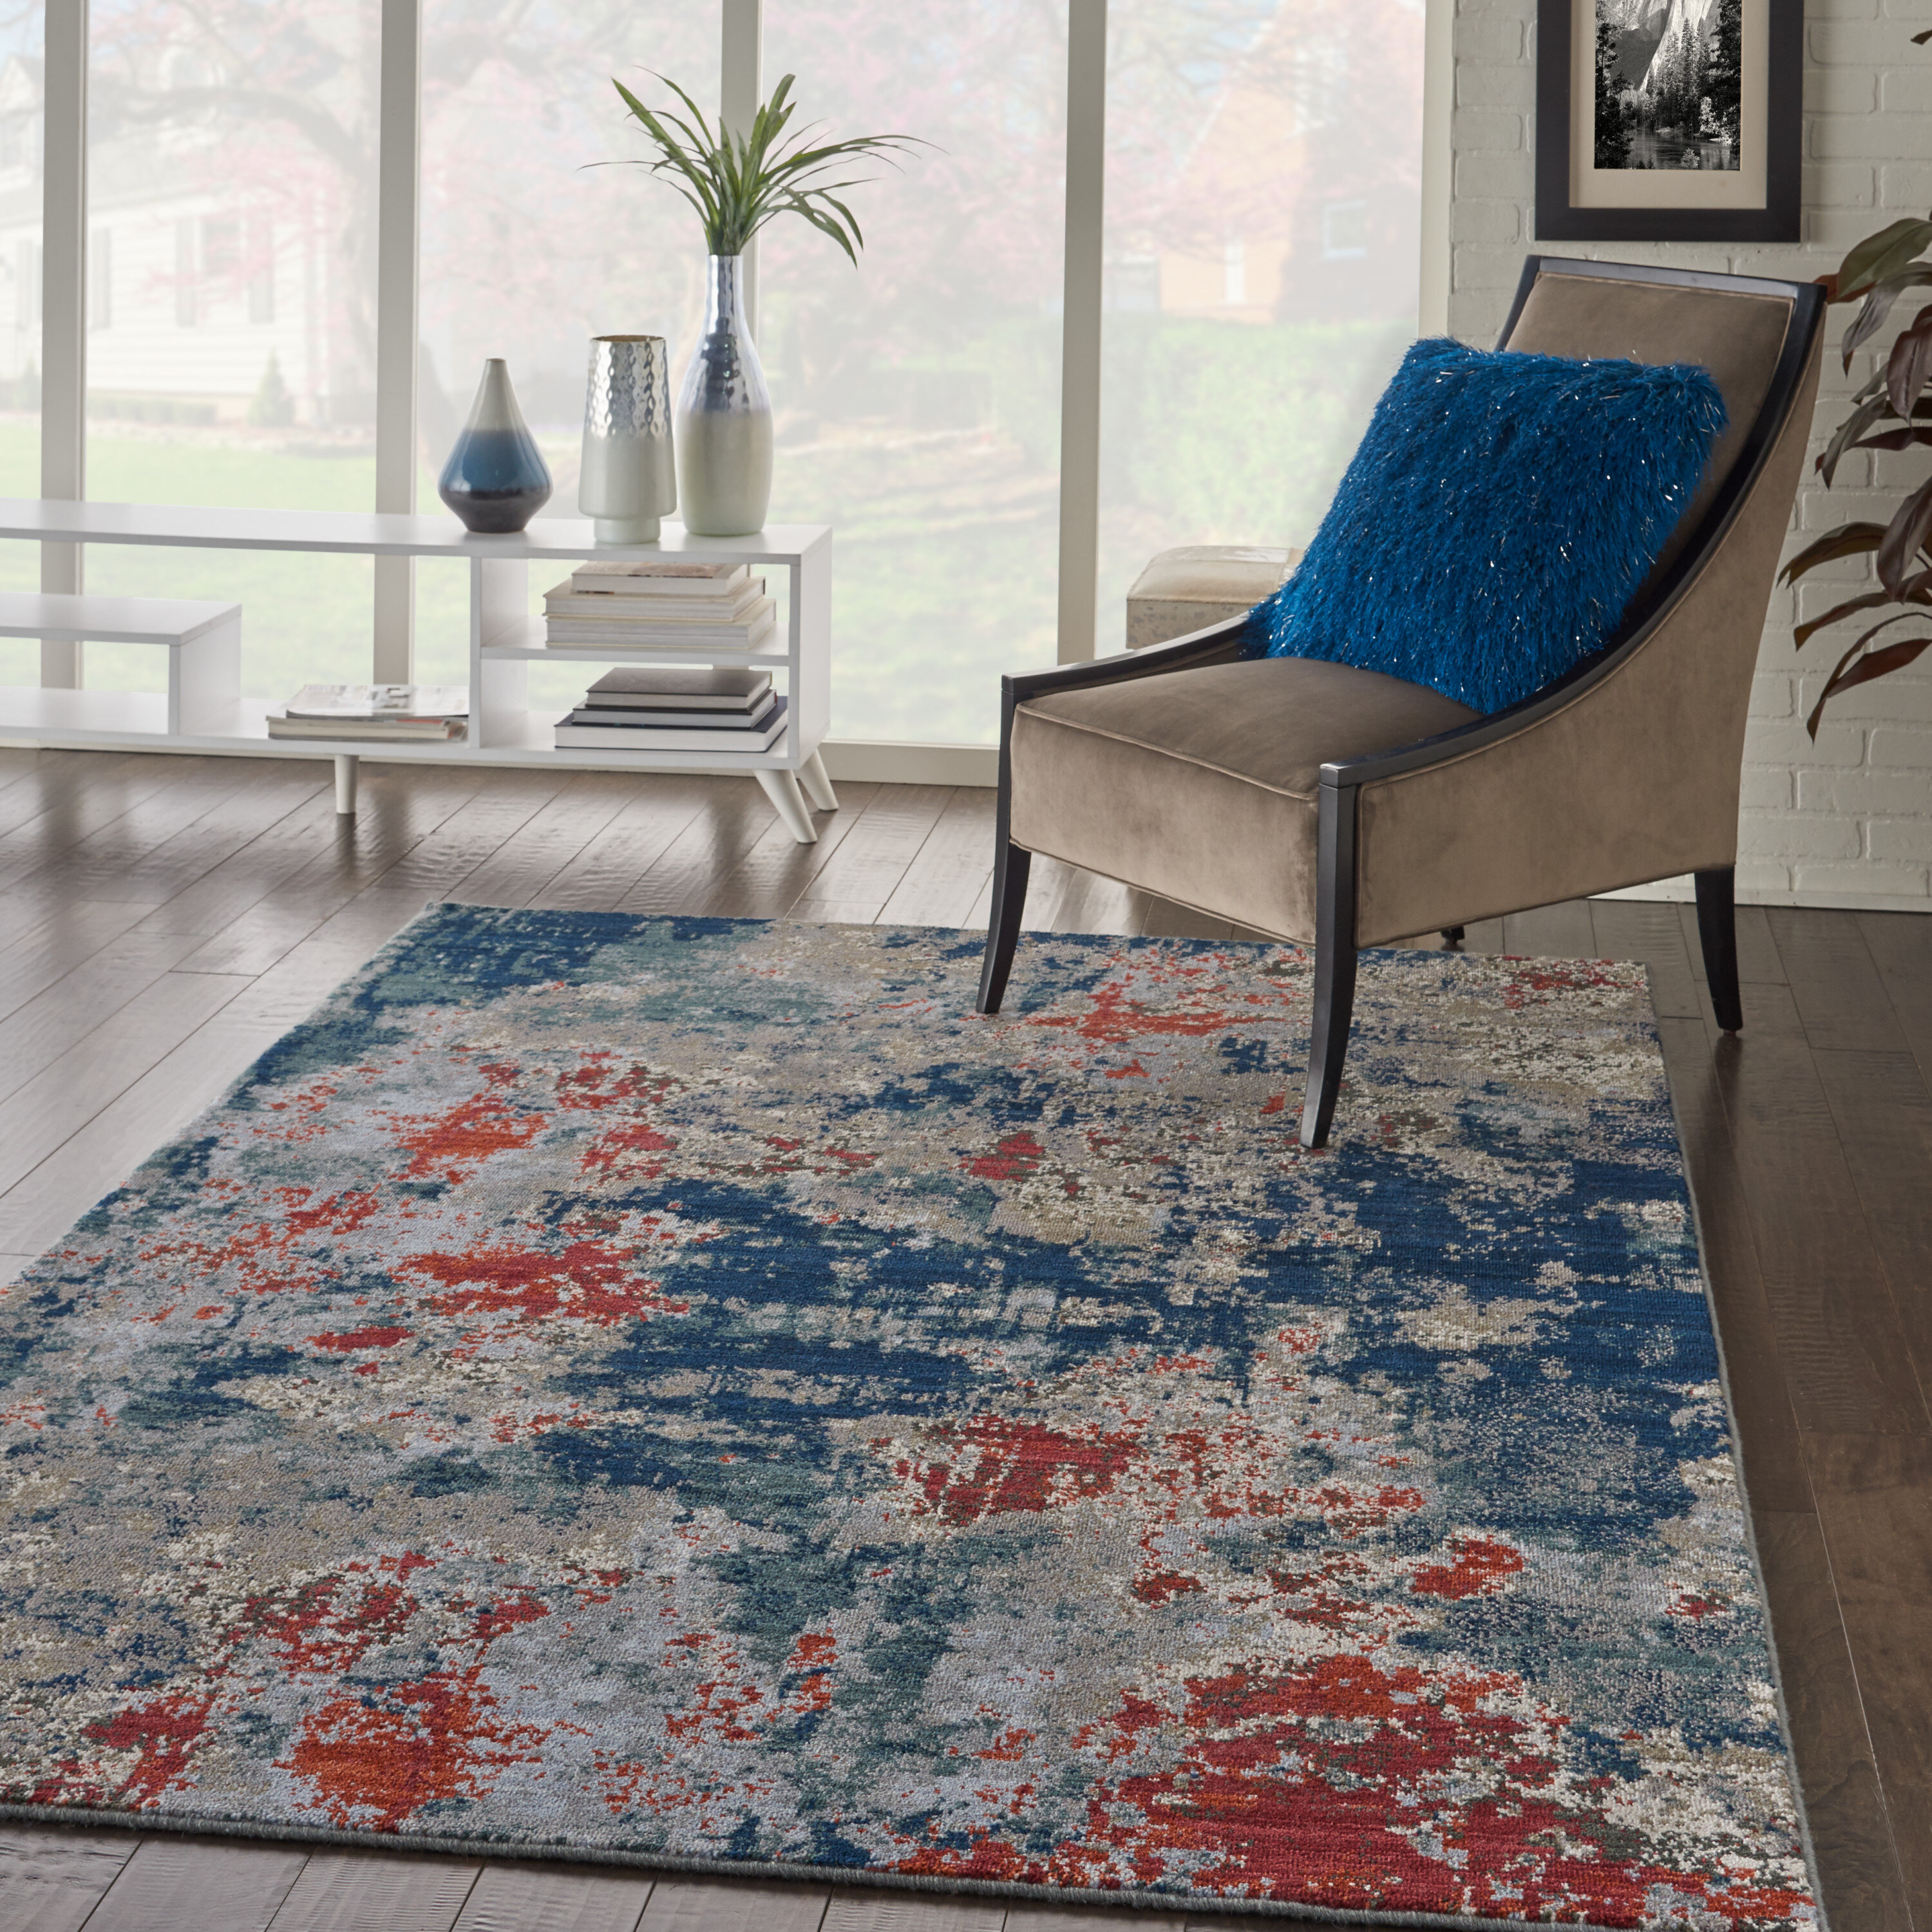 Williston Forge Toomey Abstract Blue Red Beige Area Rug Wayfair Ca